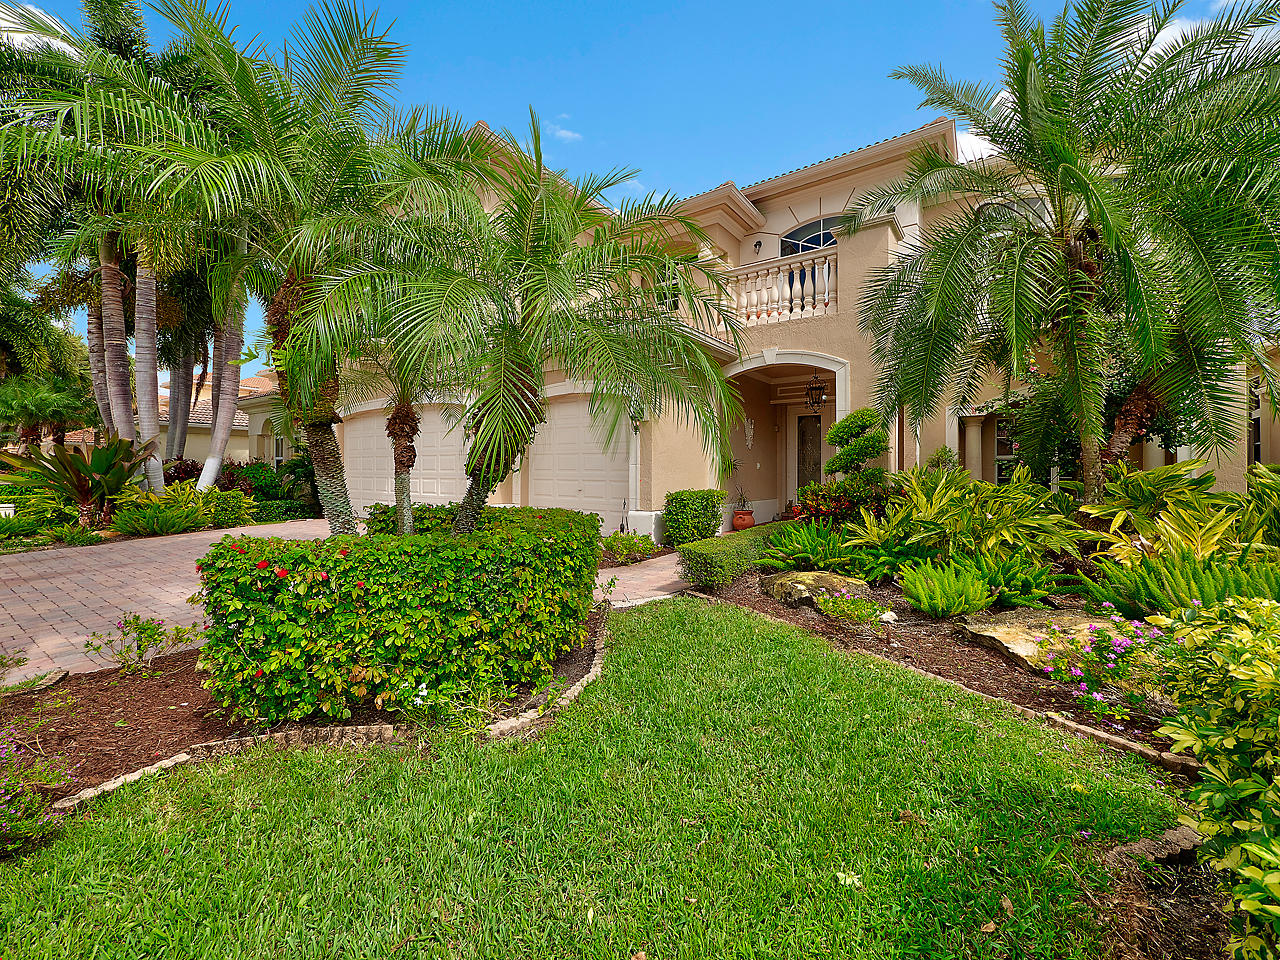 FRENCHMANS RESERVE PALM BEACH GARDENS FLORIDA